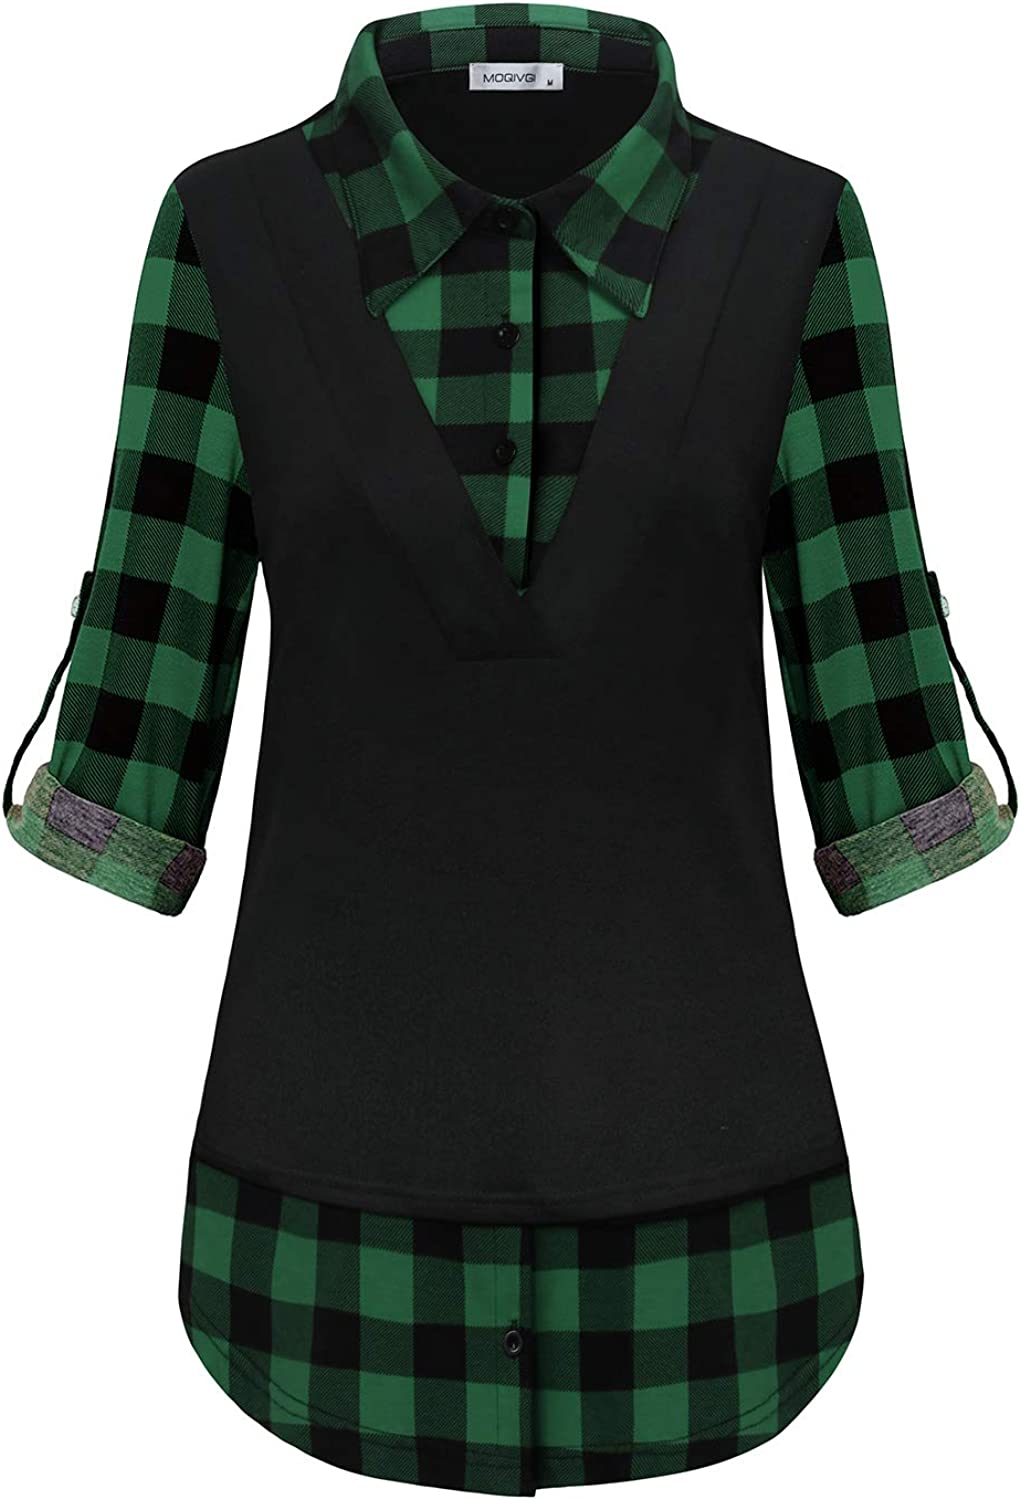 MOQIVG Womens Long Sleeve Contrast Collar Shirts Trendy Casual Plaid Patchwork Tunic Tops